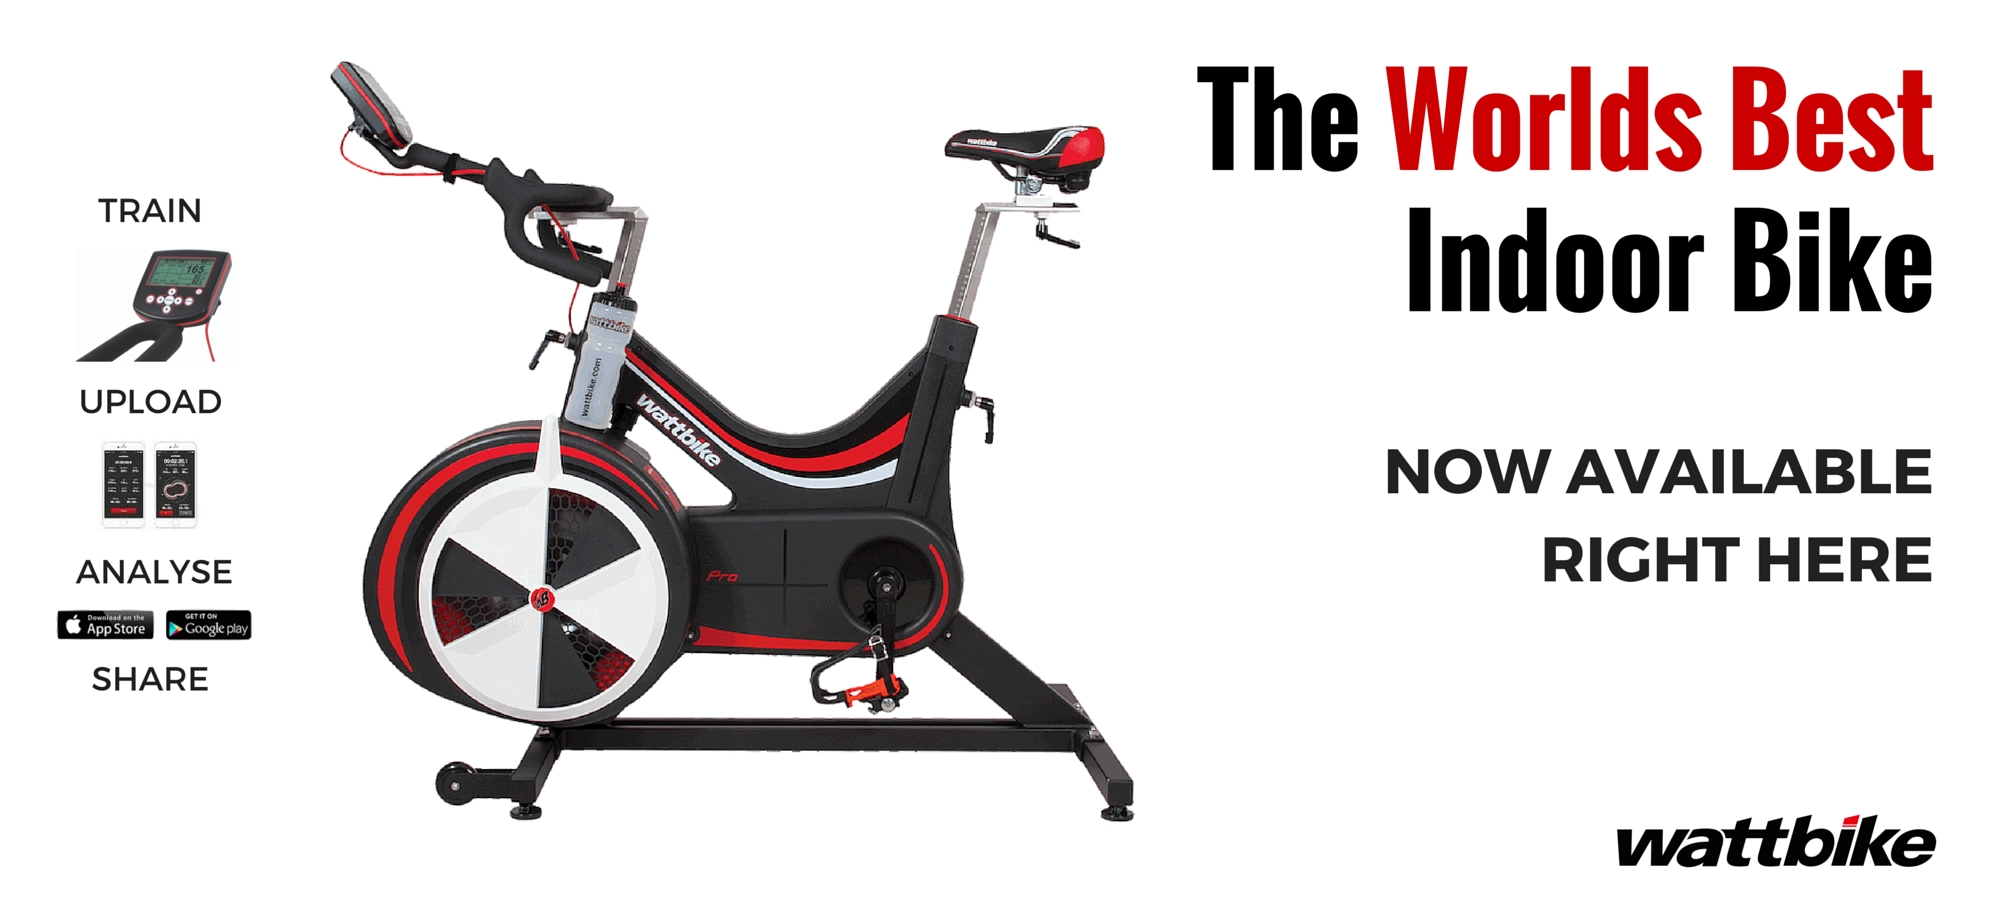 Wattbike now available at summit fitness equipment